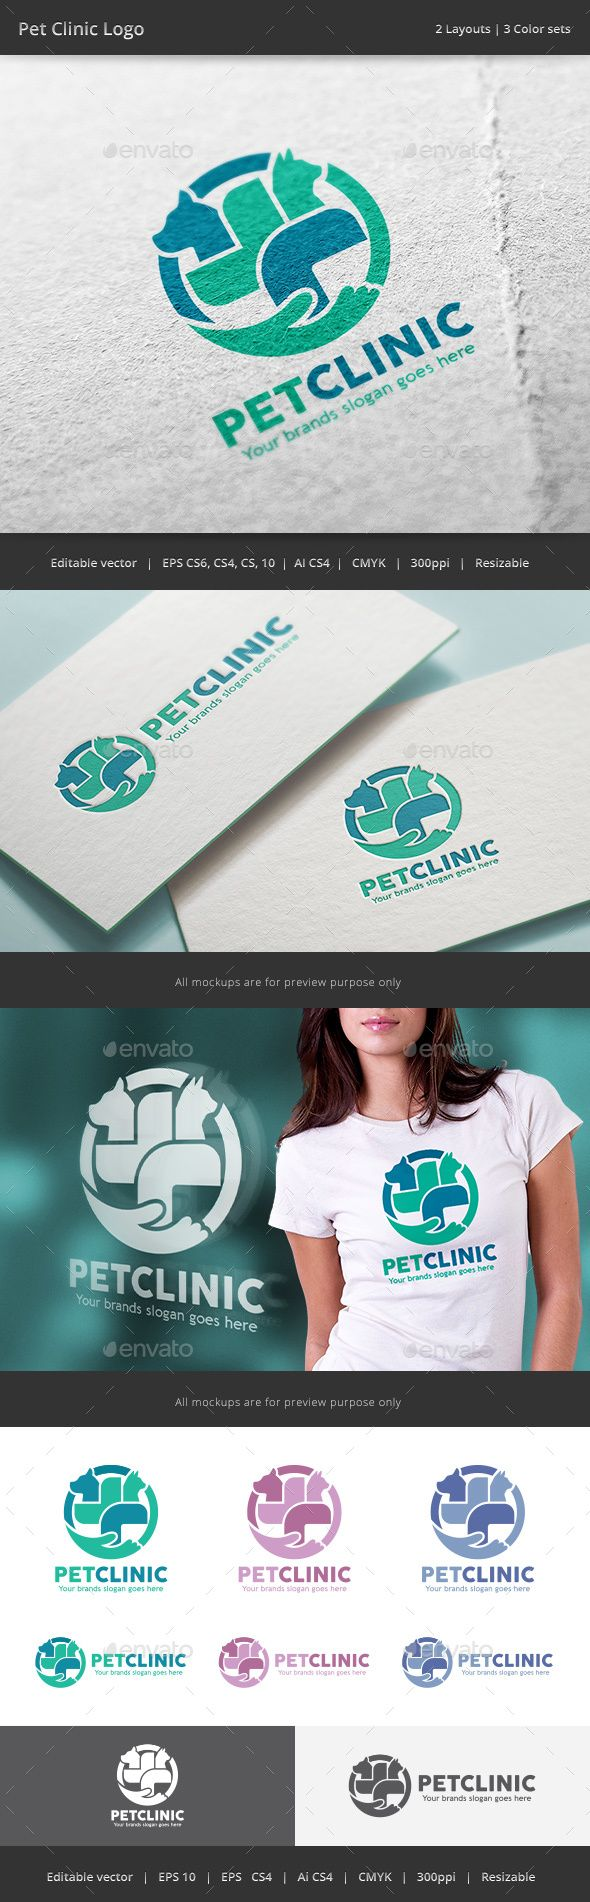 Pet Clinic Veterinarian  Logo Design Template Vector #logotype Download it here: http://graphicriver.net/item/pet-clinic-veterinarian-logo/15881975?s_rank=6?ref=nesto